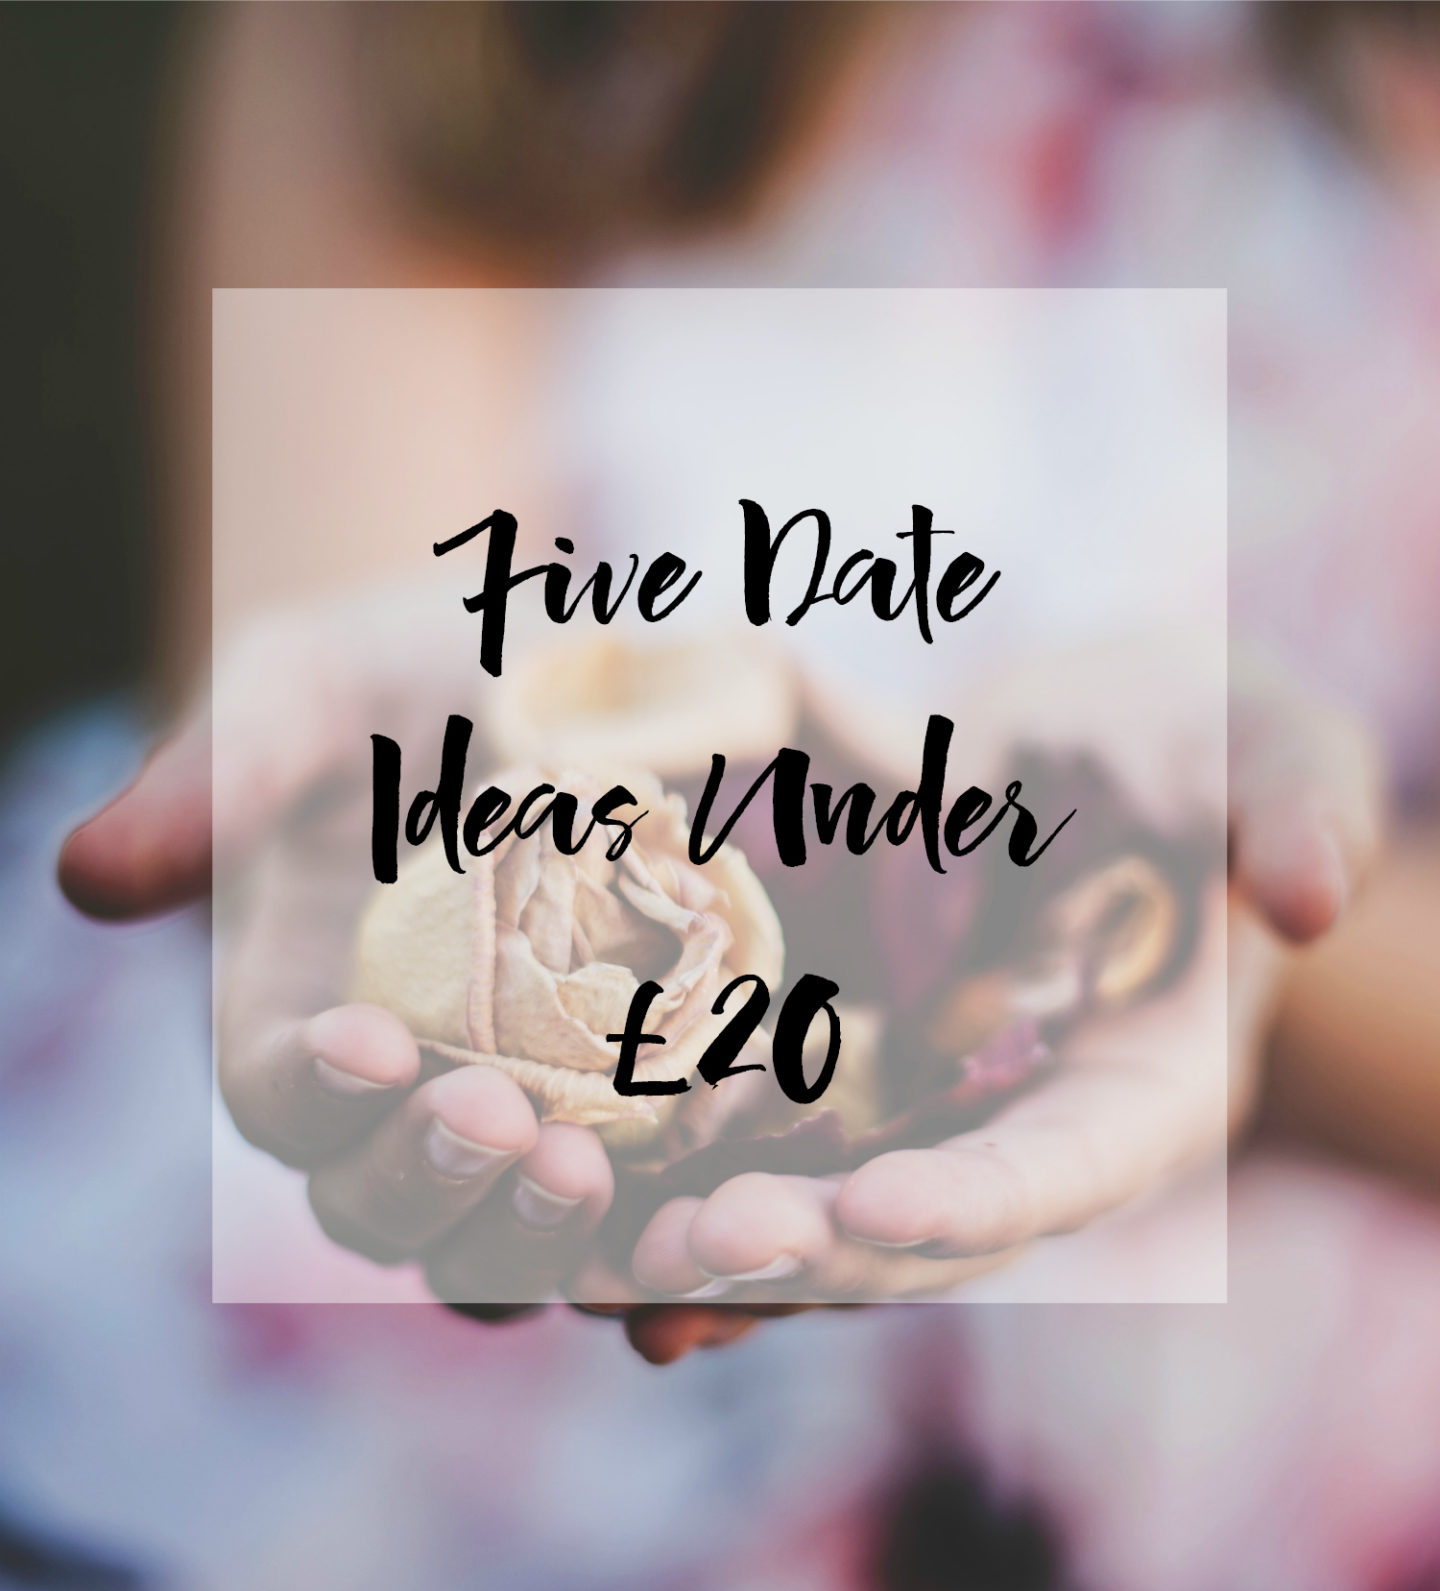 Five Date Ideas Under £20